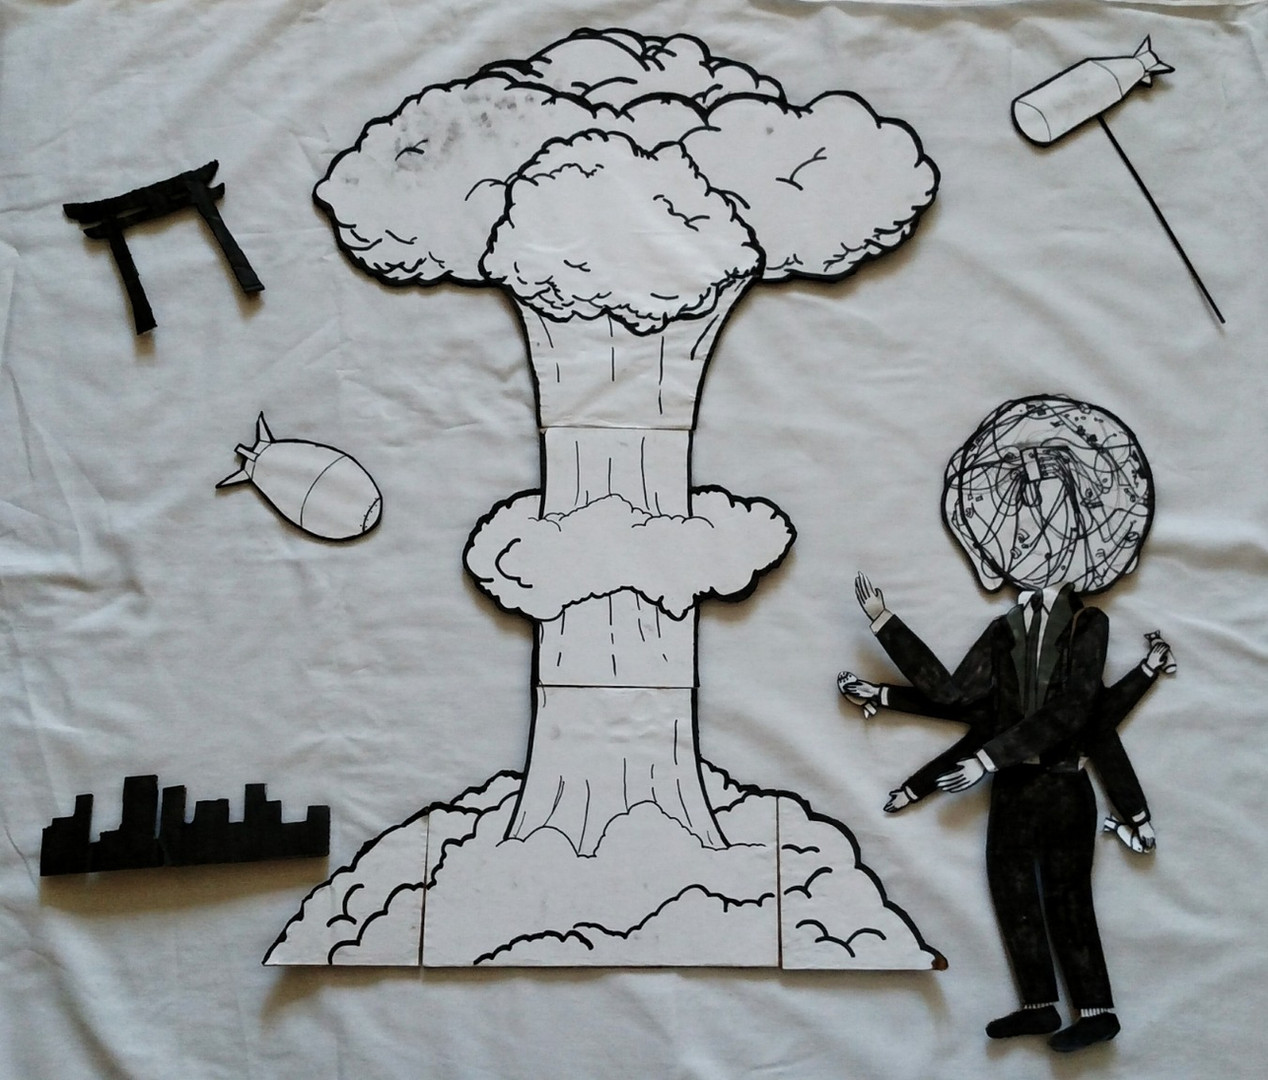 Untitled Atomic Bomb Project